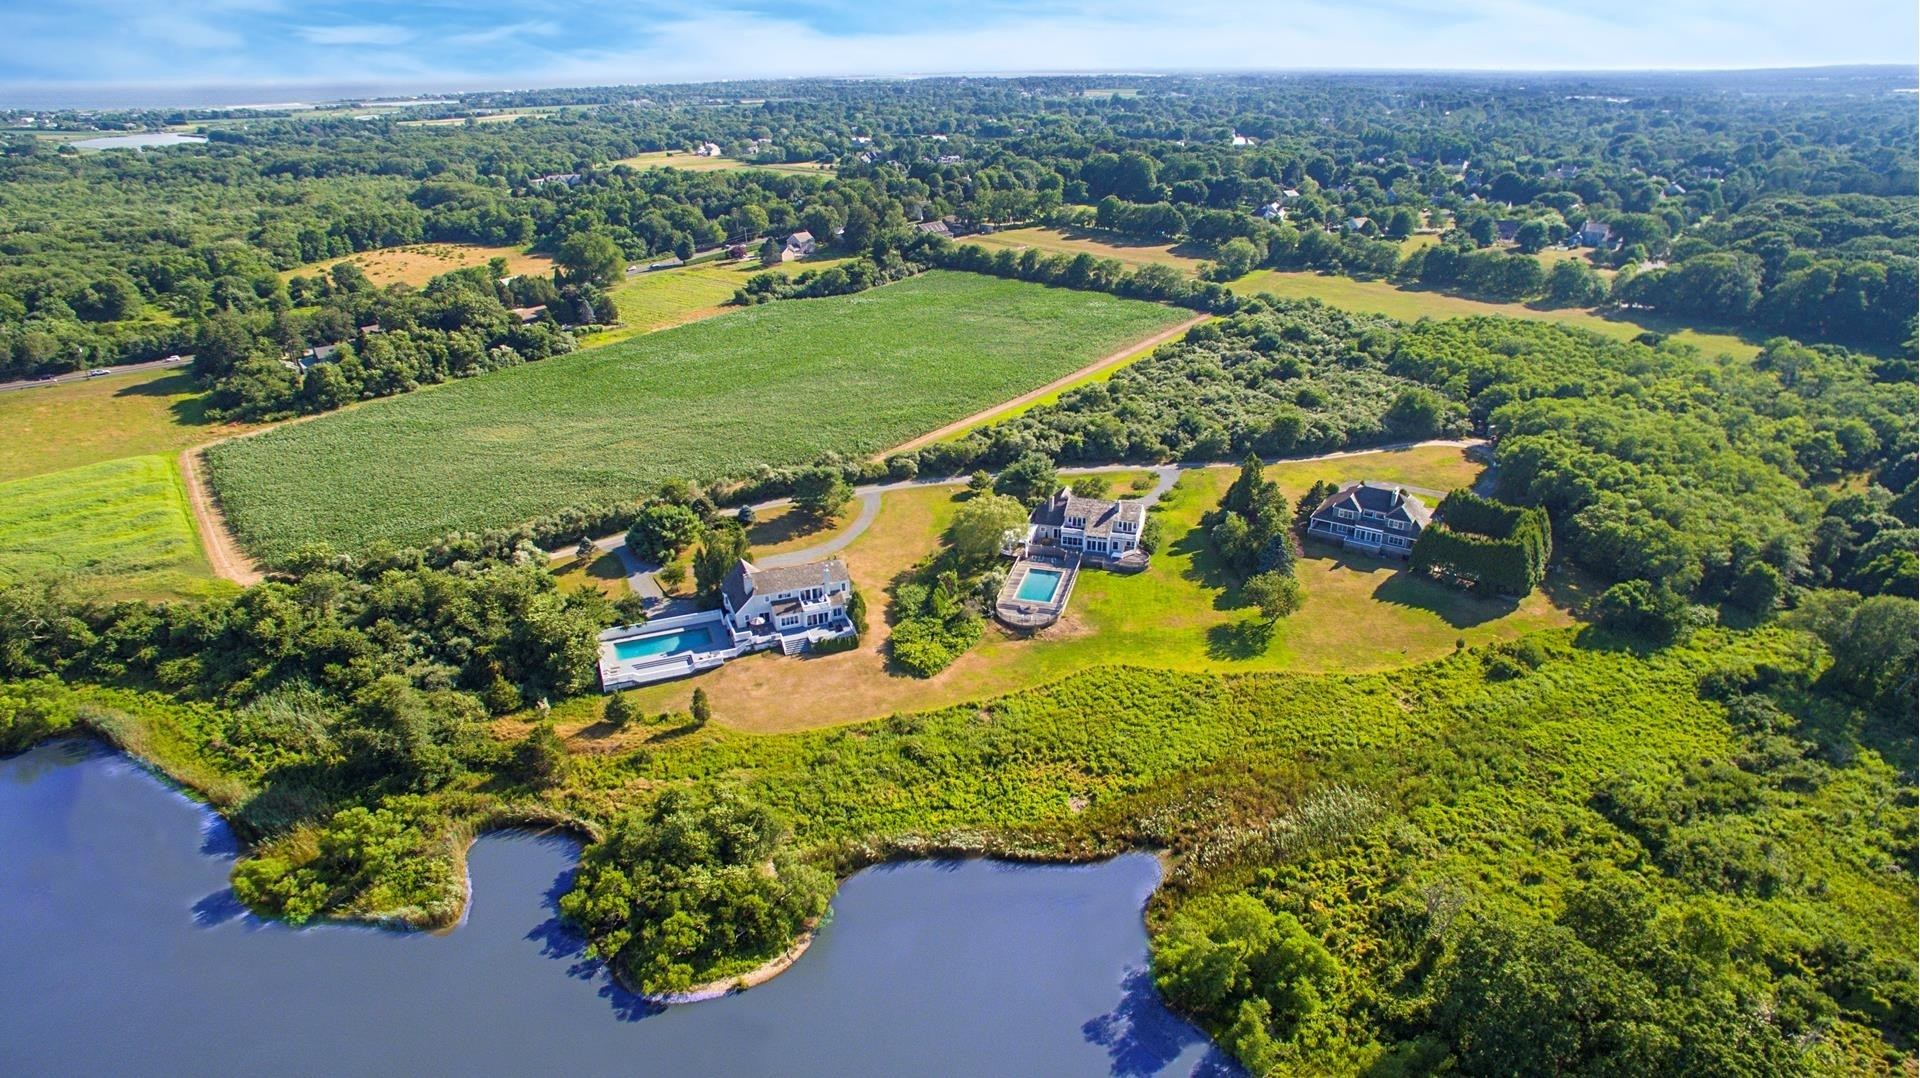 2. Single Family Homes for Sale at Sagaponack Village, NY 11962